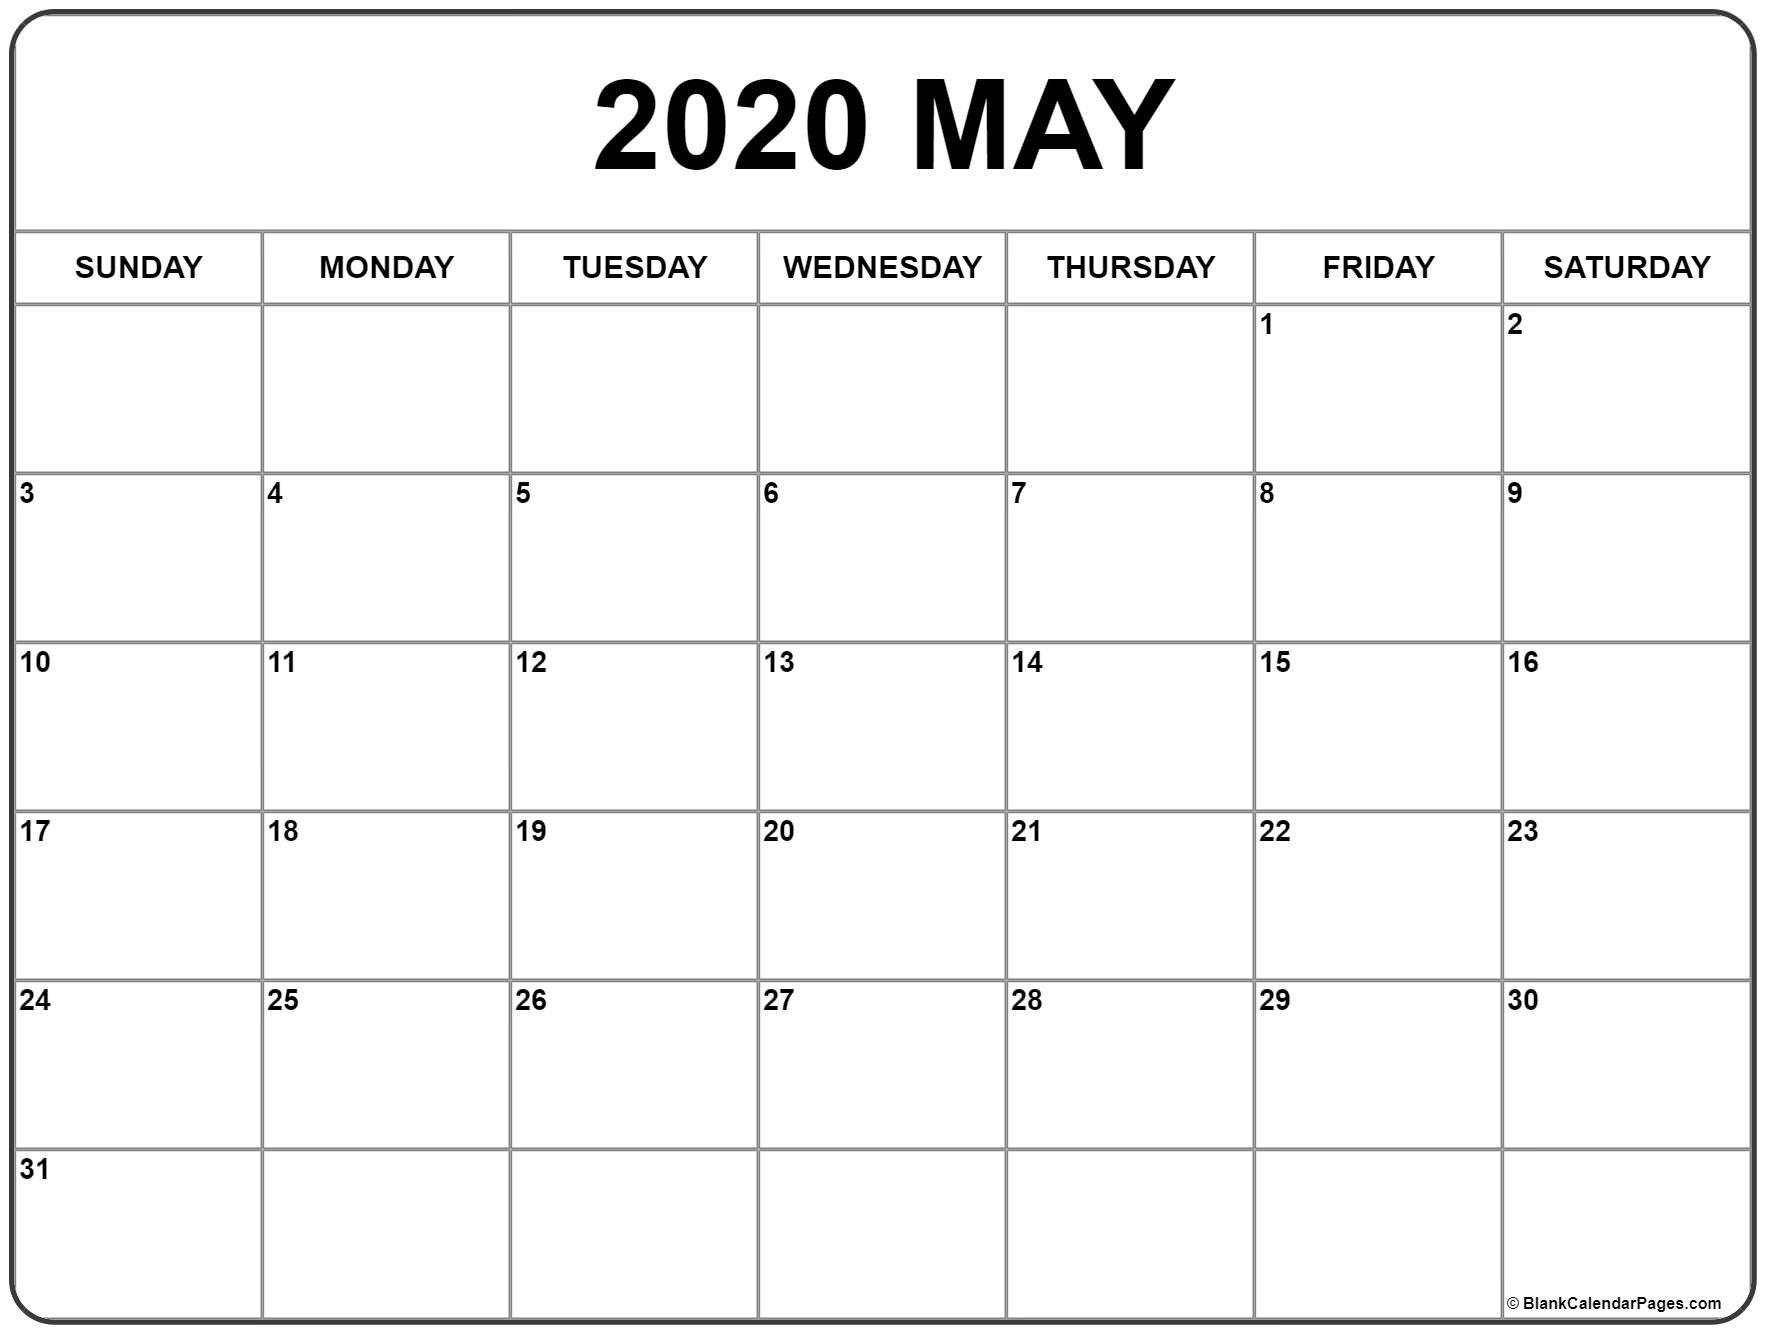 May 2020 Calendar | Free Printable Monthly Calendars Free No Download Printable Calendars